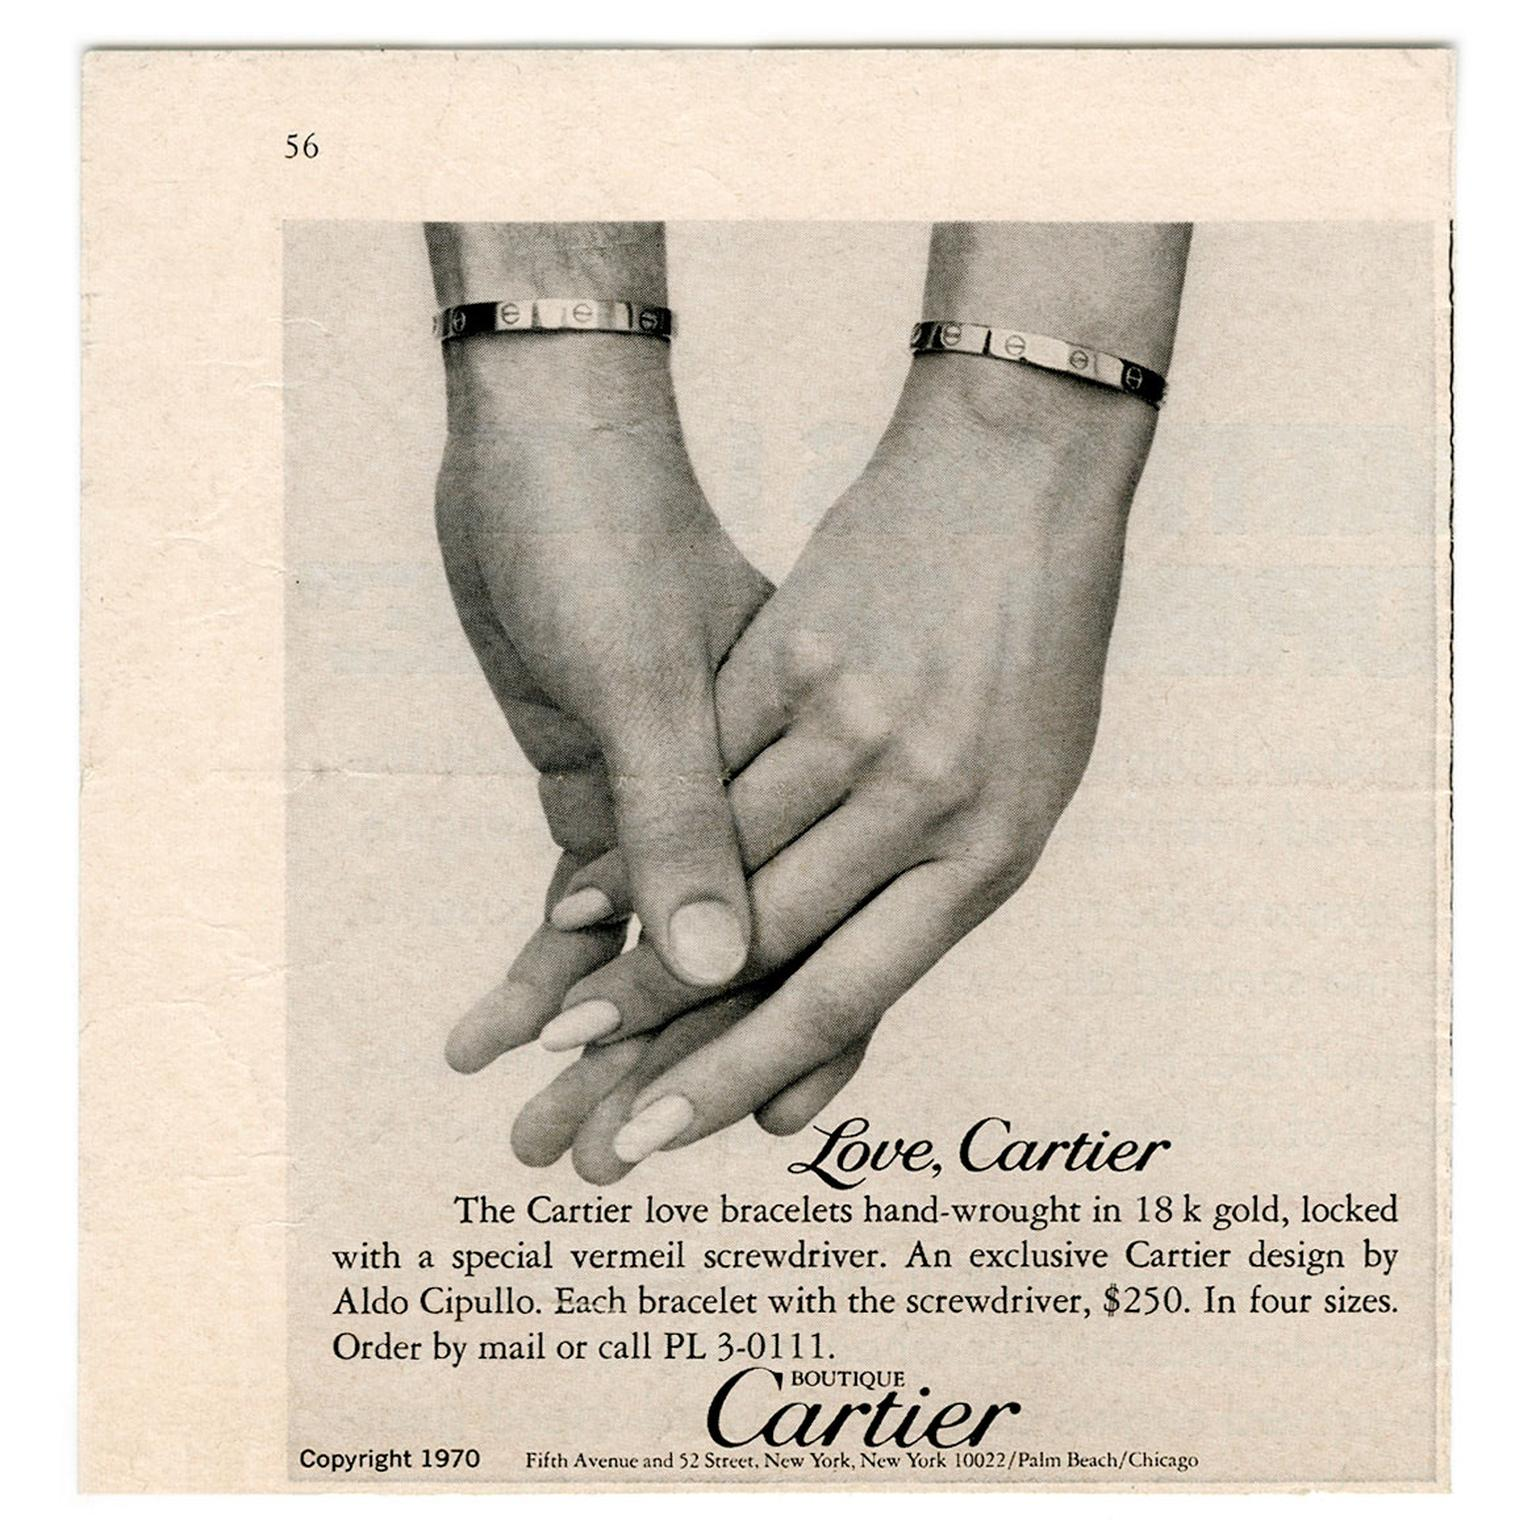 Cartier Love bracelet ad from 1970